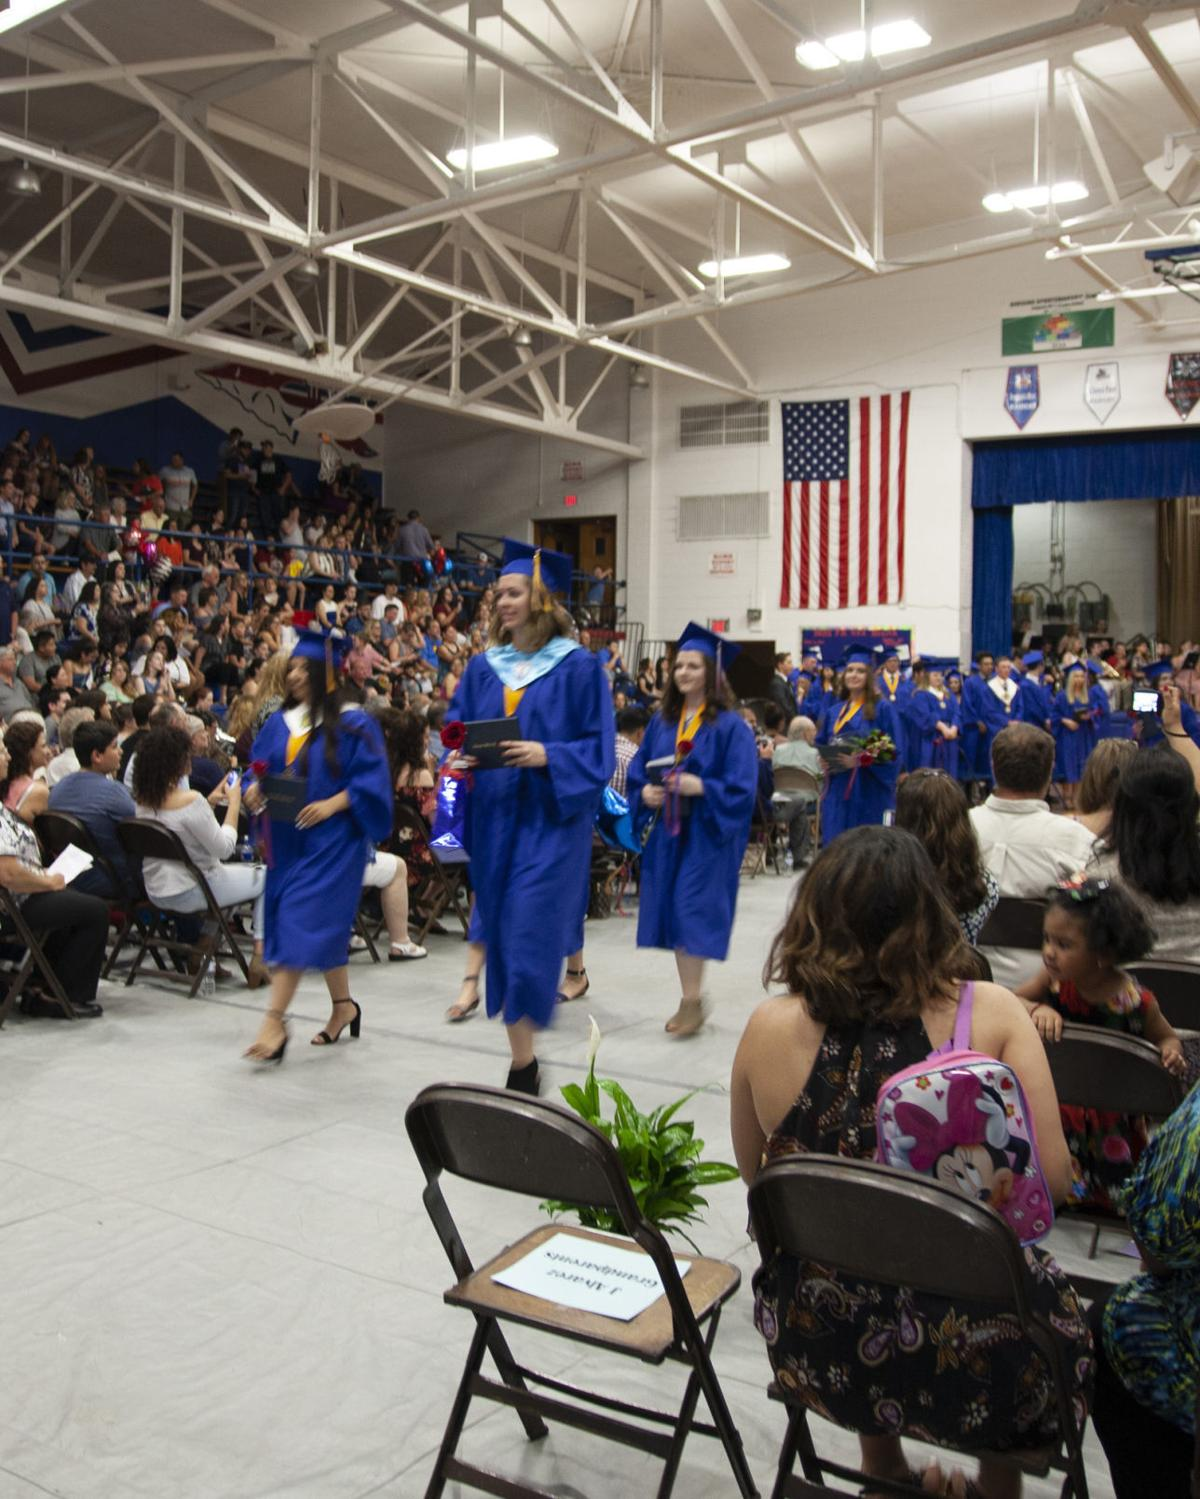 Iroquois West High School Graduation May 25 2018 Iroquois